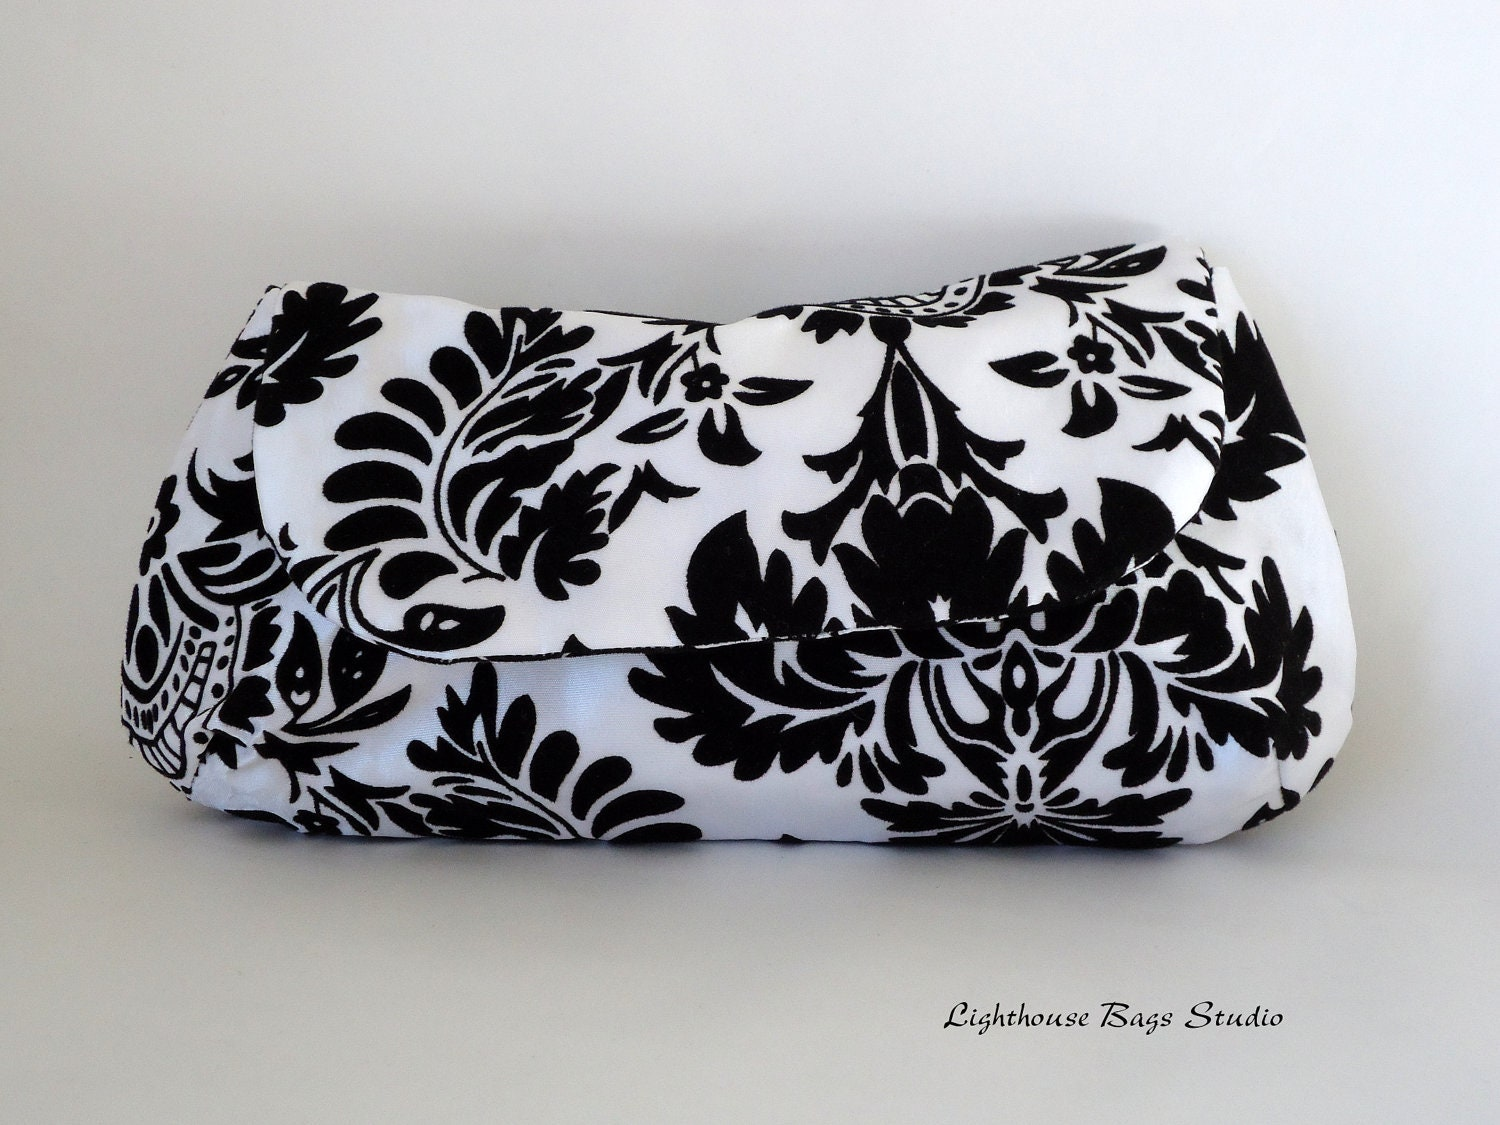 Curvy Clutch / Bridesmaid-Wedding Clutch - Black Damask - Lighthousebags